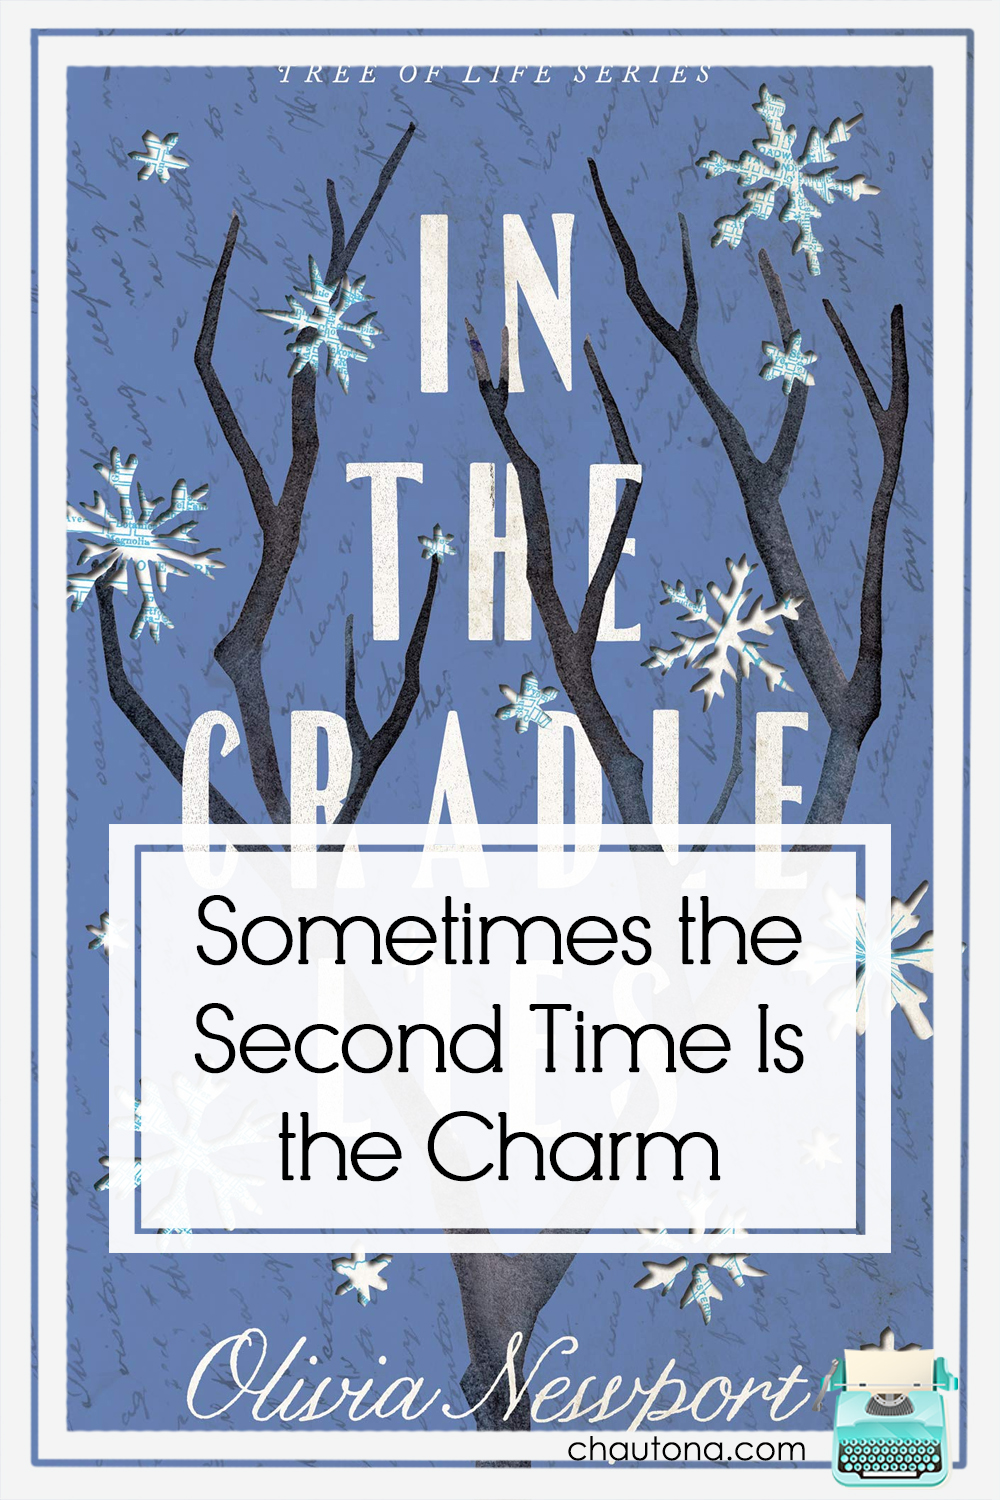 In the Cradle Lies offers geneology, mystery, and a blend of historical and contemporary fiction in one, impossible-to-put-down book. Can't wait for the next. via @chautonahavig